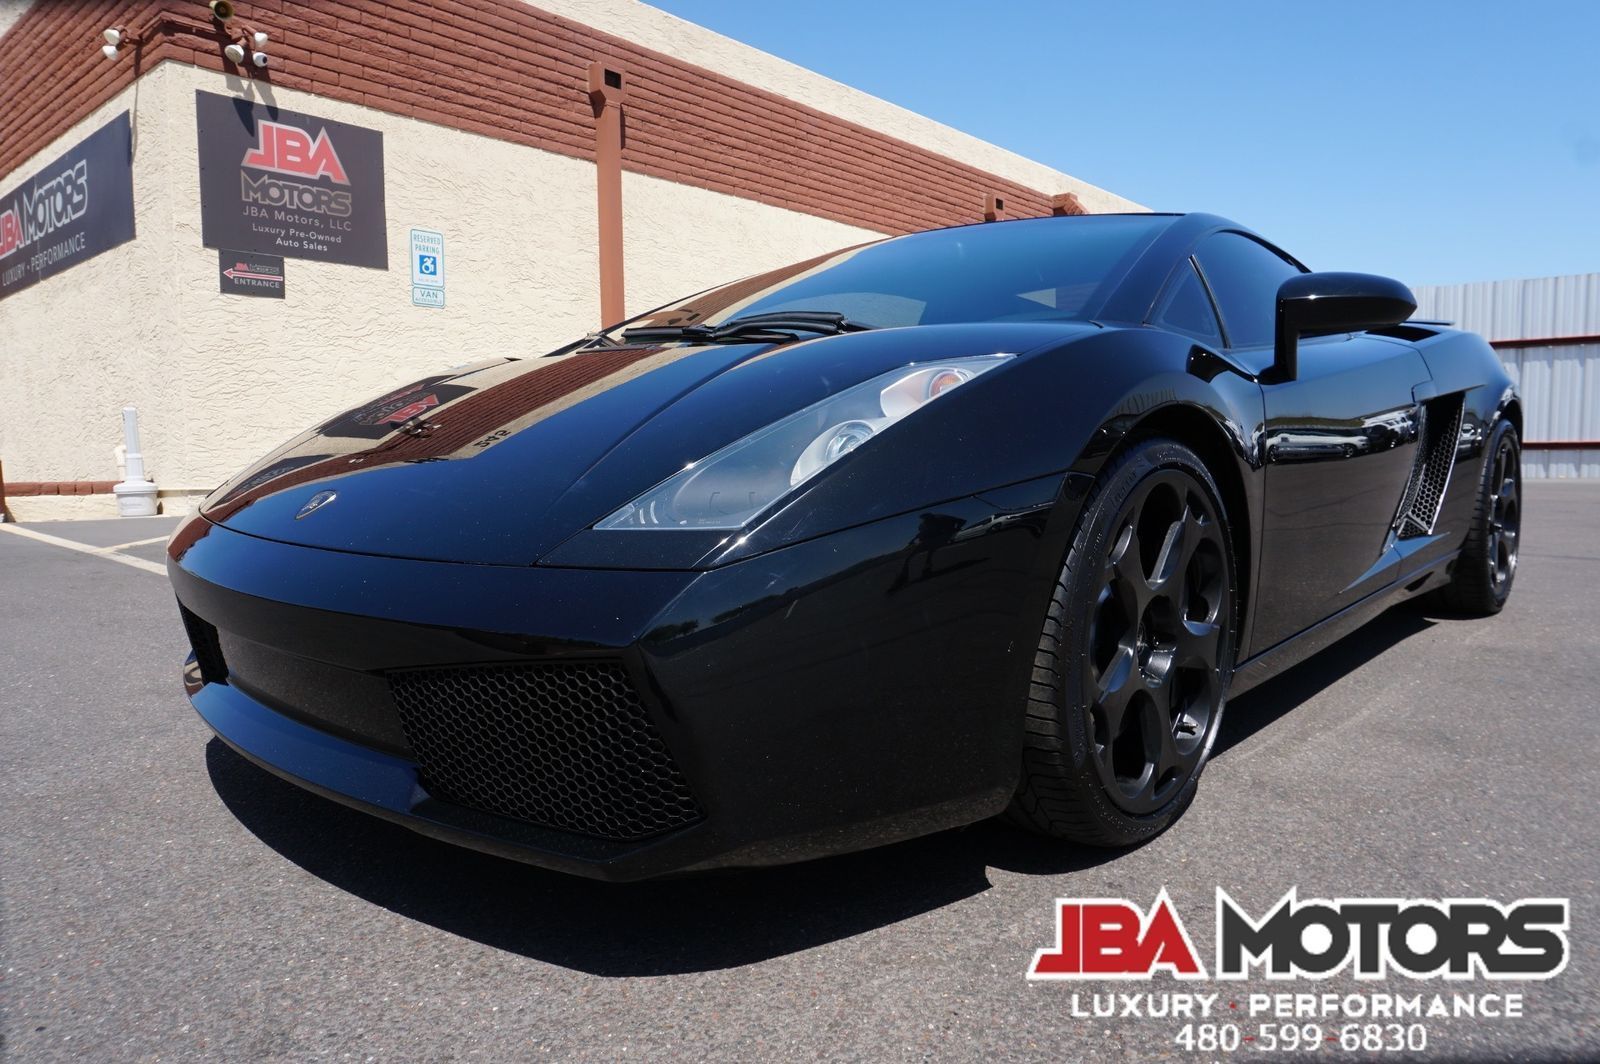 Superb Amazing Lamborghini Gallardo Coupe 2005 Black Coupe! 2018 2019